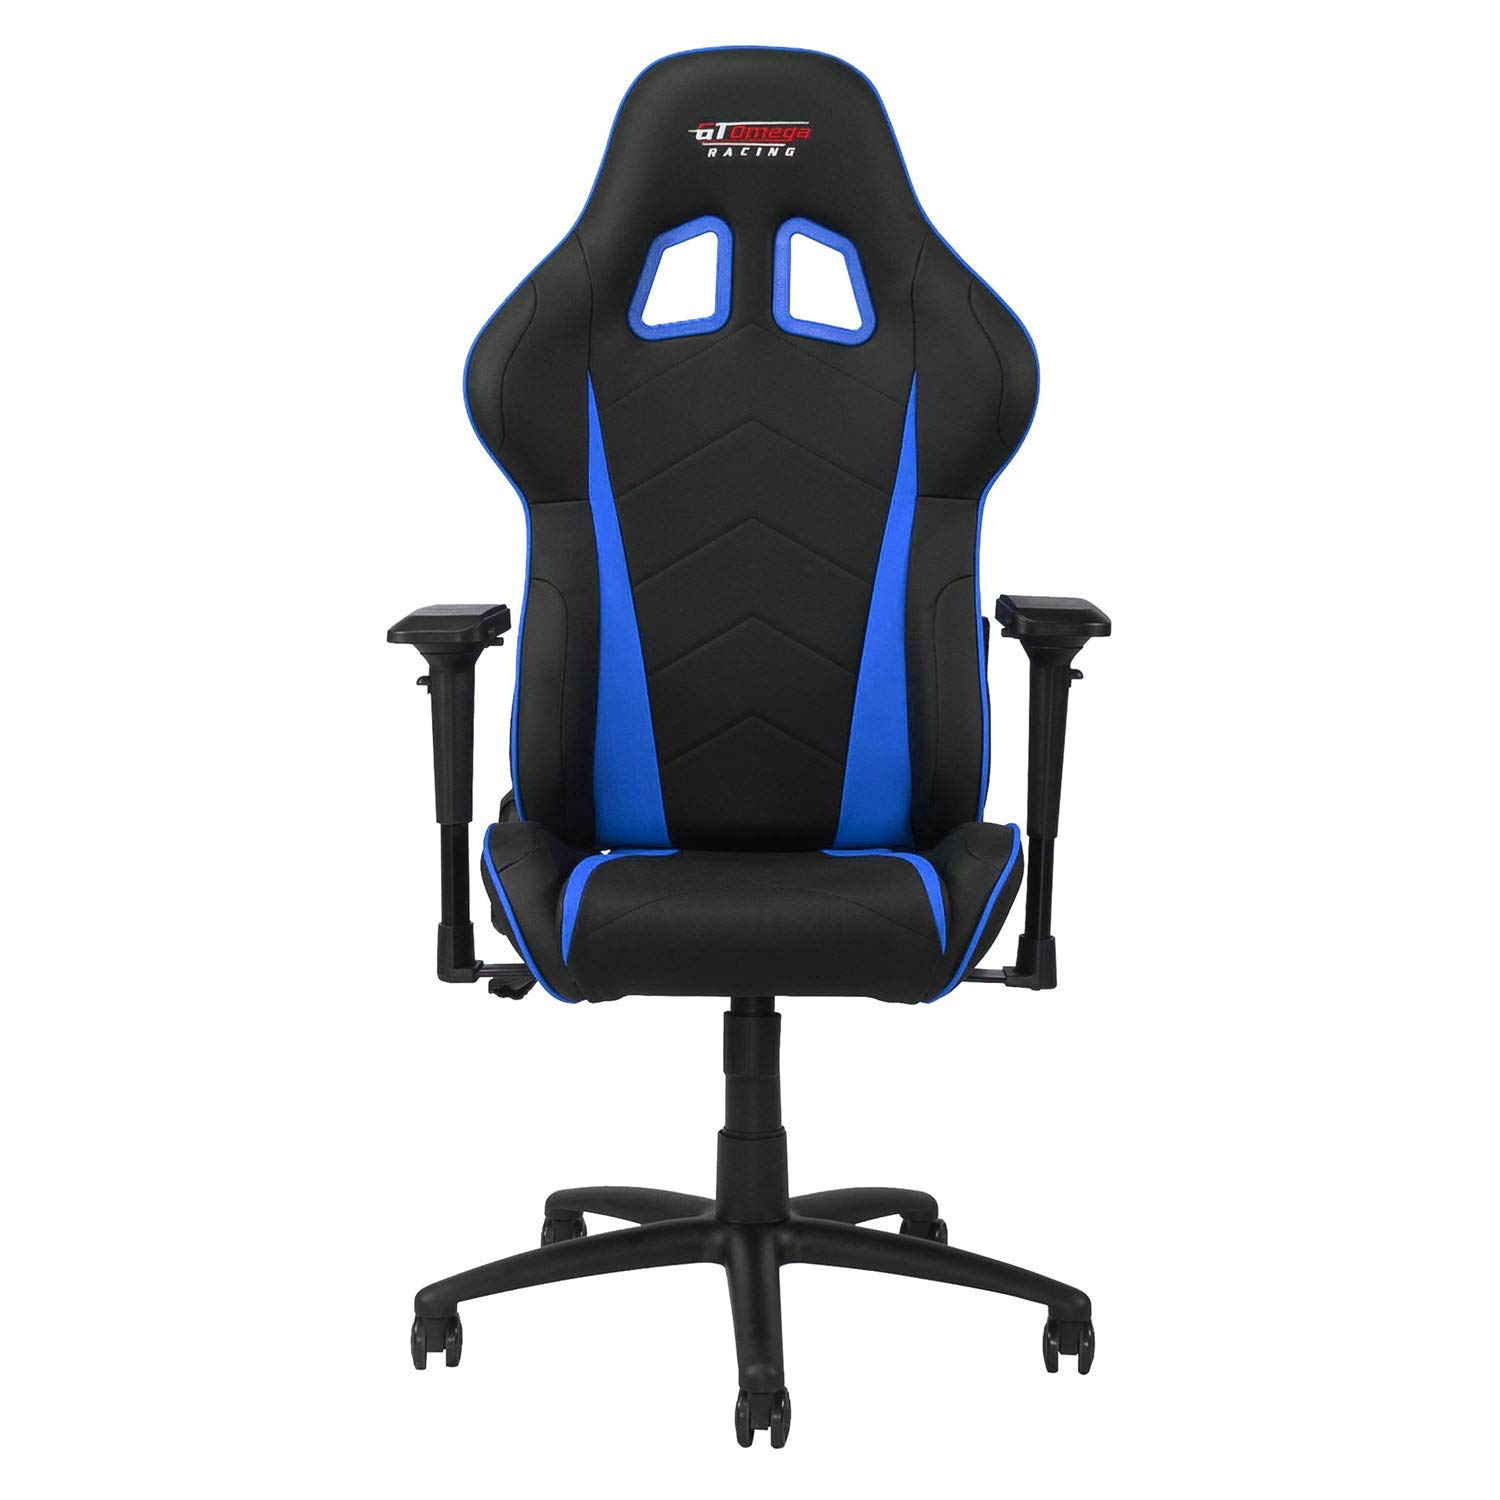 GT OMEGA PRO Racing Gaming Chair with Ergonomic Lumbar Support - PVC Leather Reclining High Back Home Office Chair with Swivel - PC Gaming Desk Chair for Ultimate Racing Experience - Black Next Blue